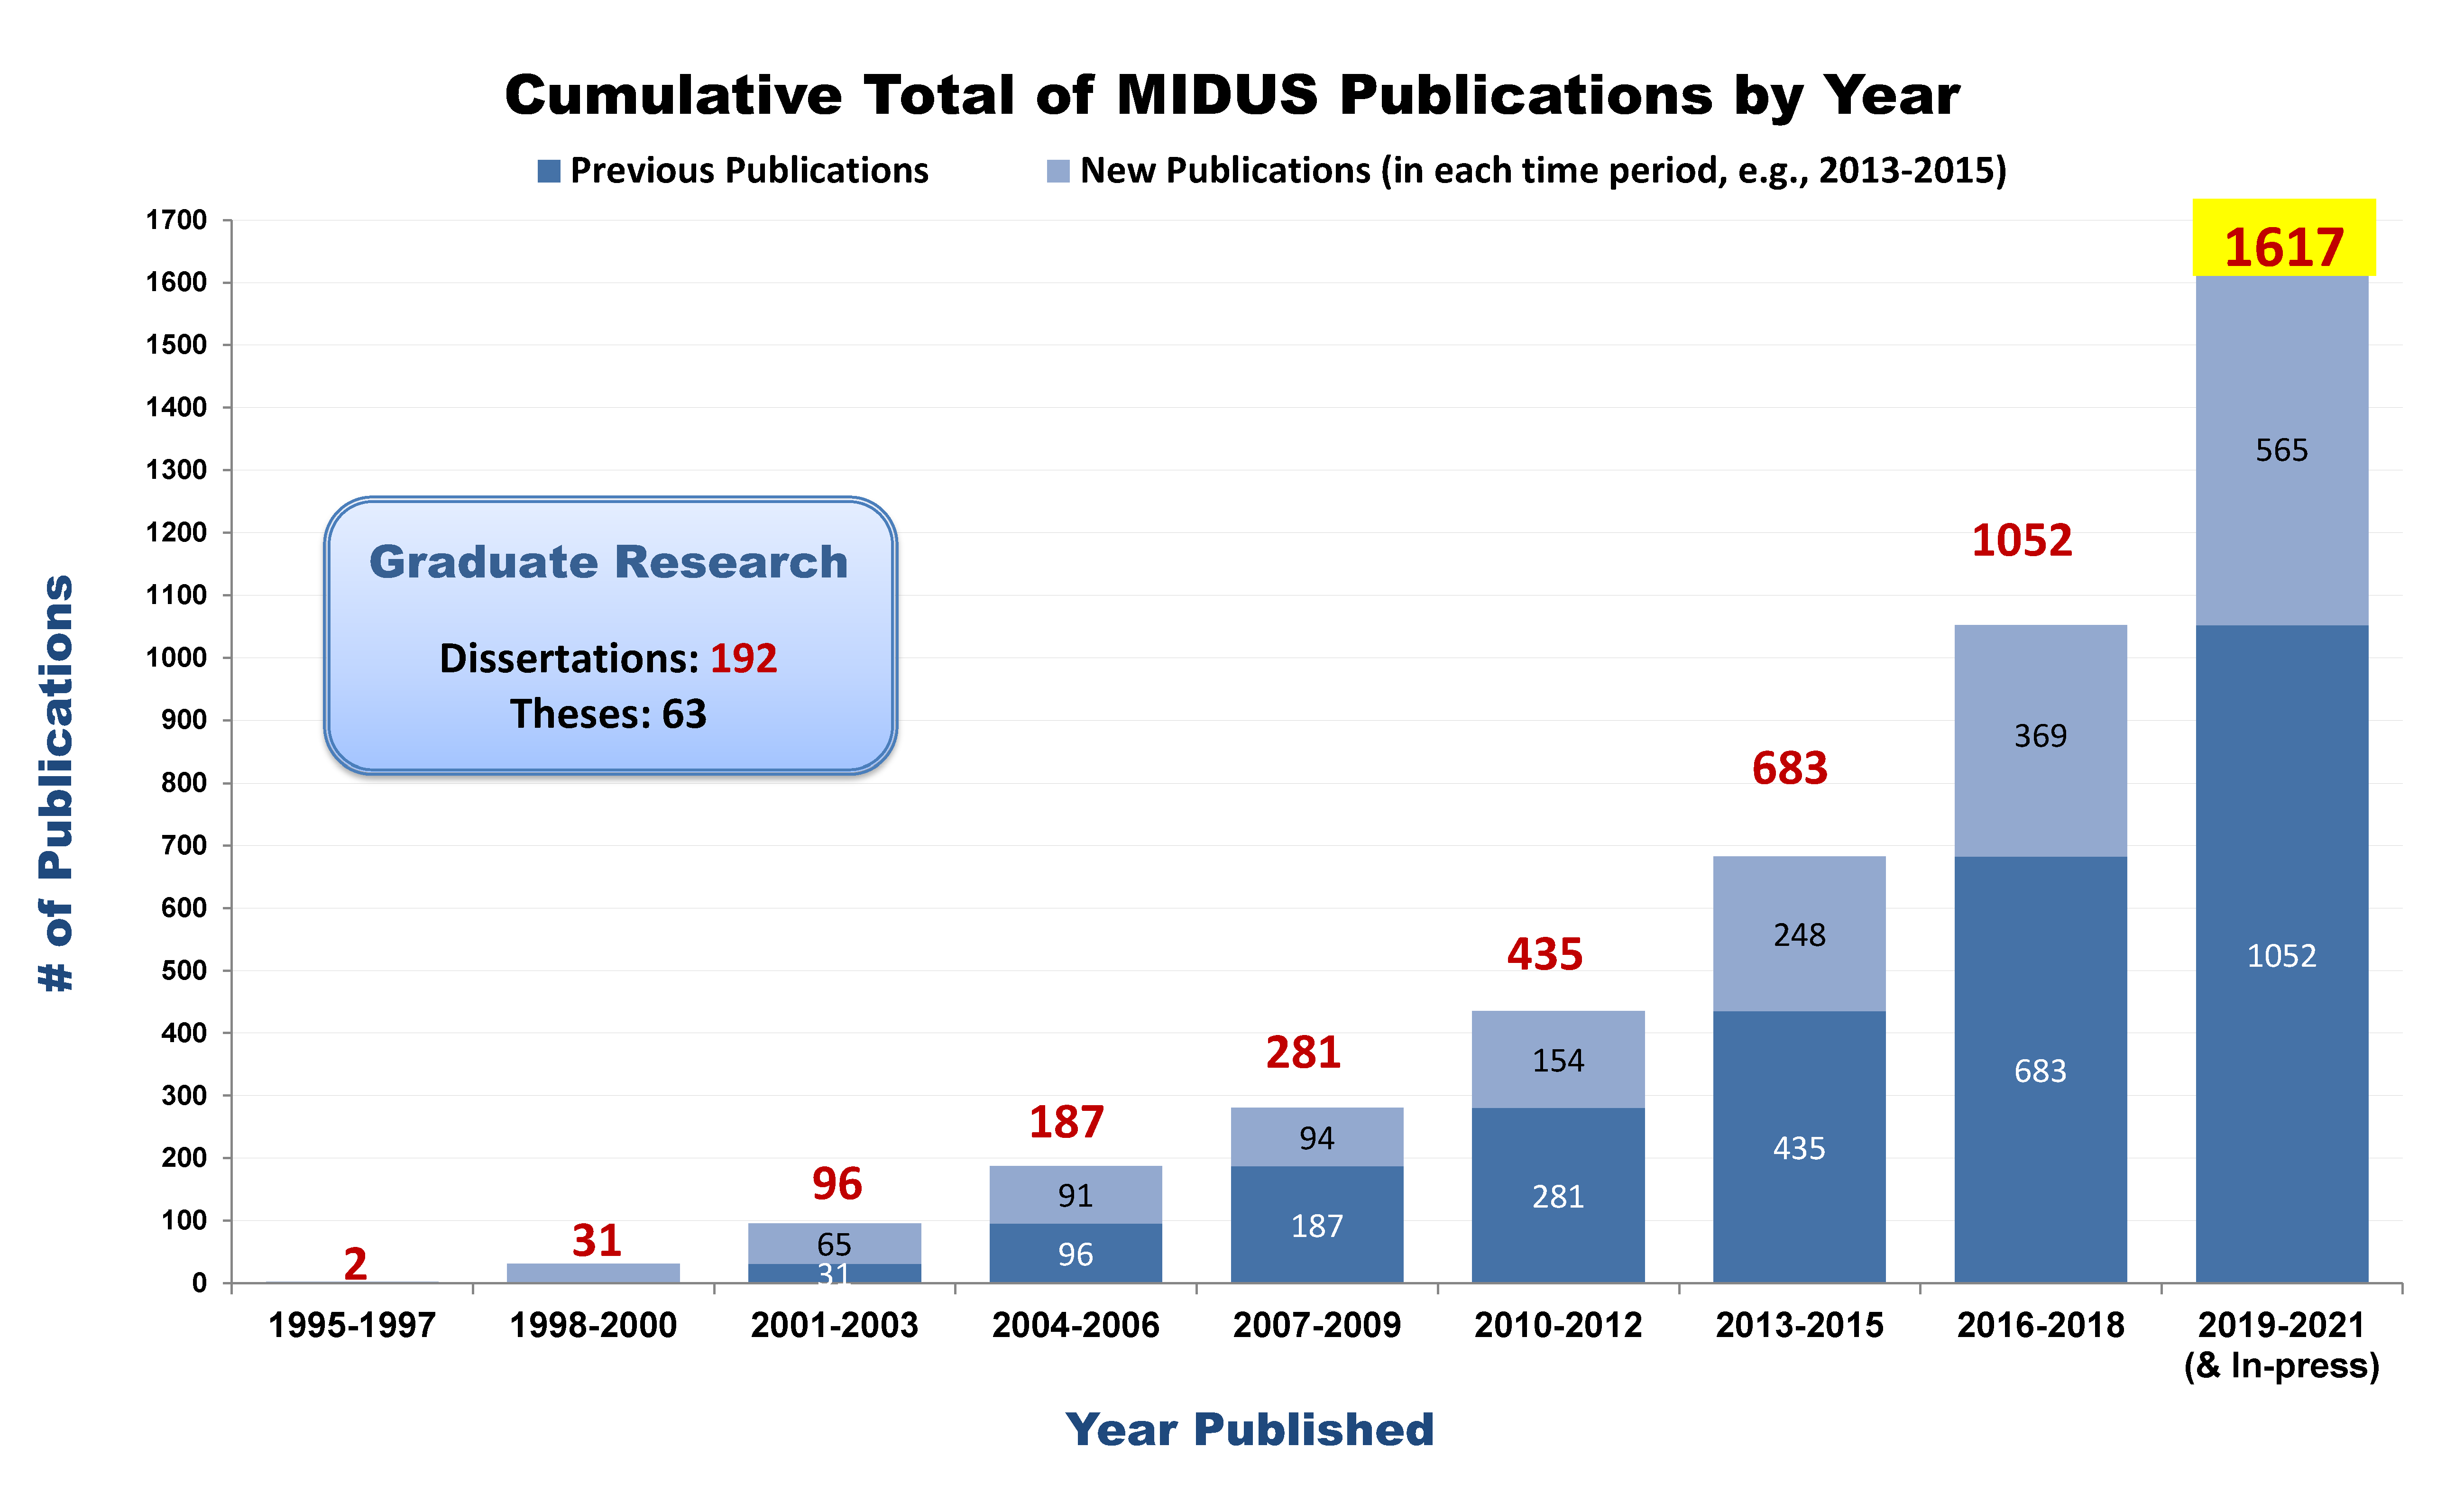 # of MIDUS pubs by year